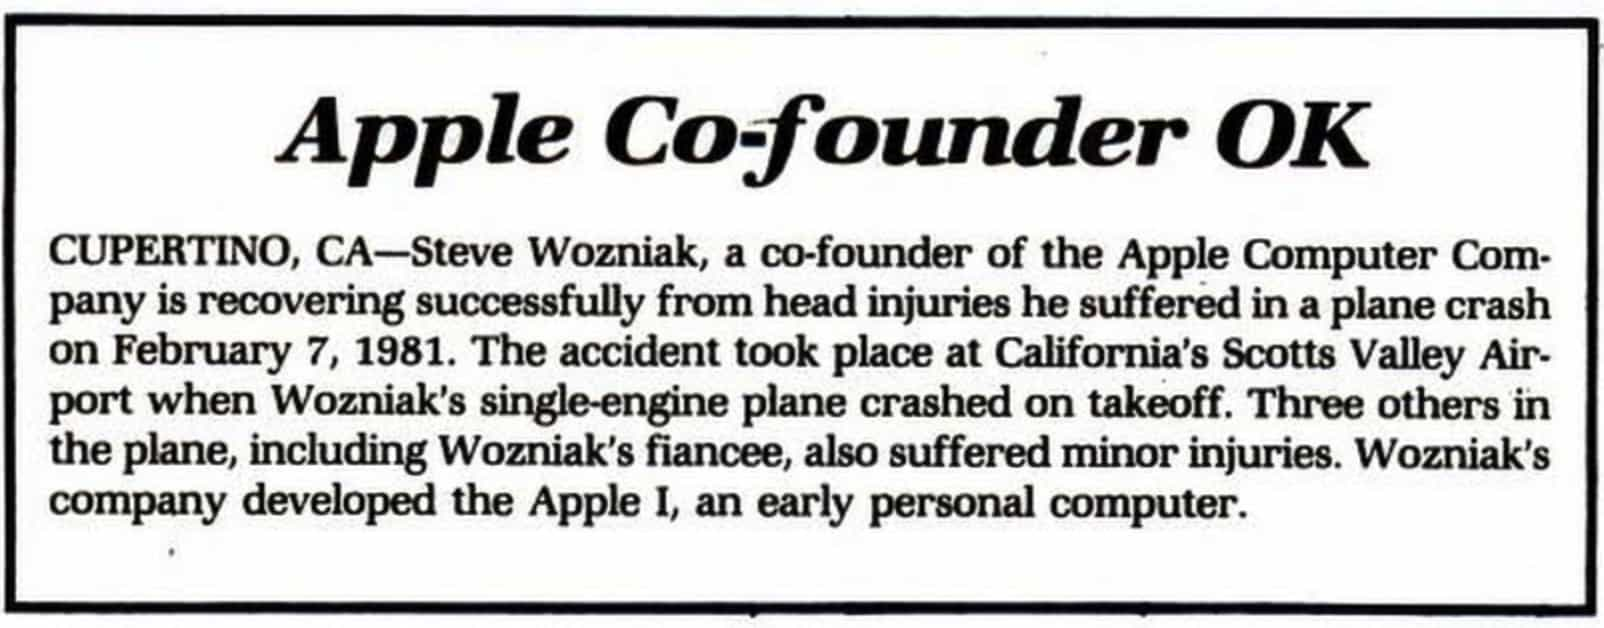 Steve Wozniak plane crash makes the news.